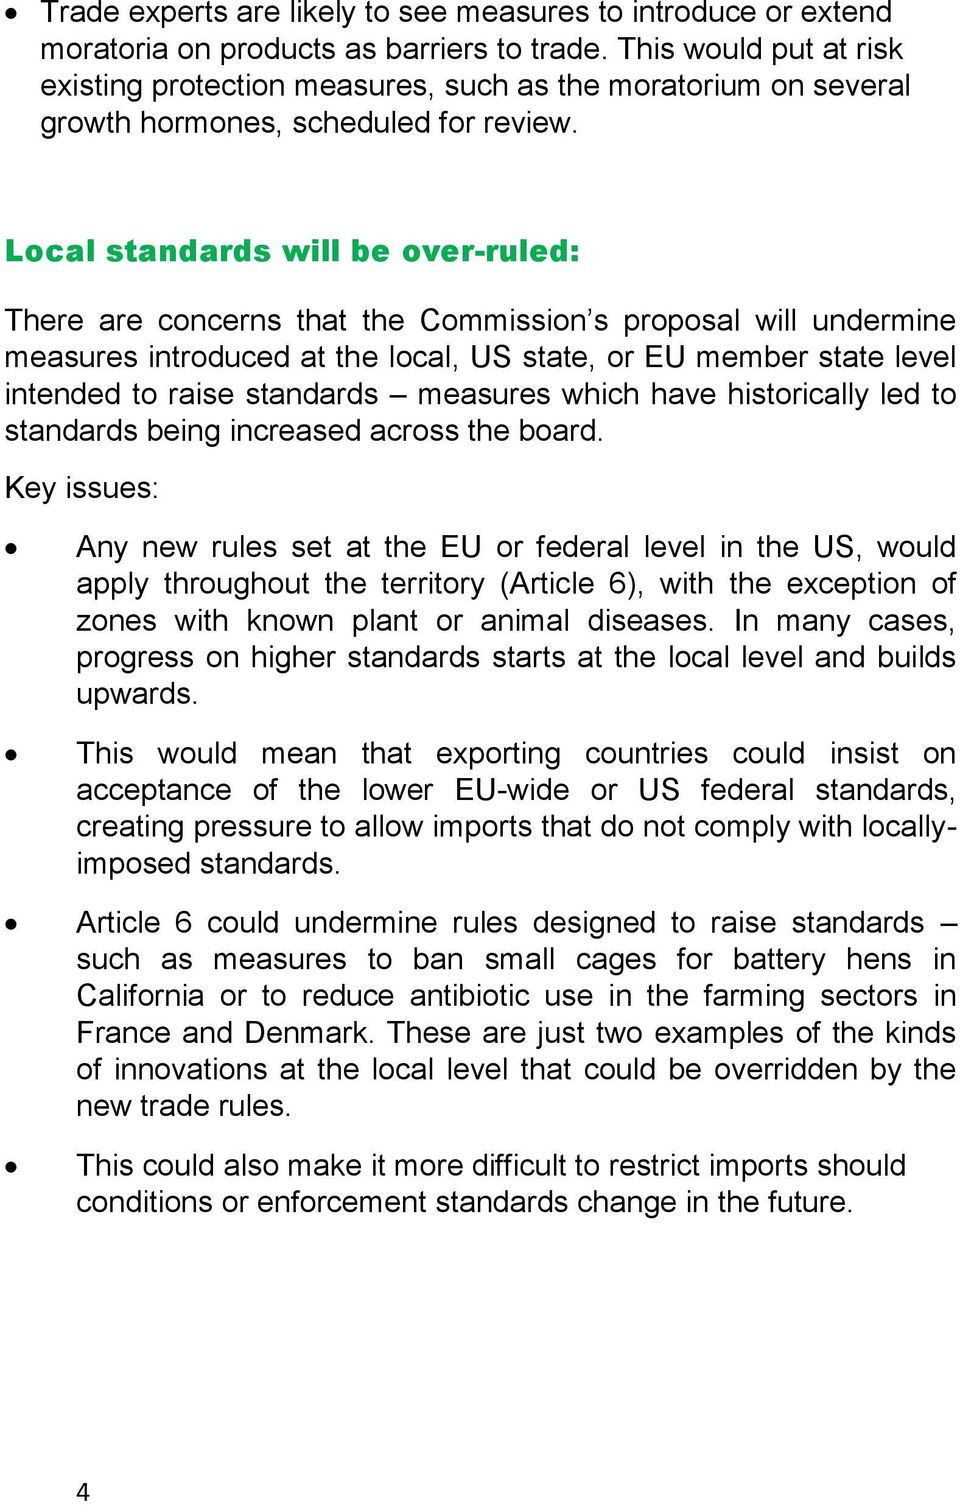 Local standards will be over-ruled: There are concerns that the Commission s proposal will undermine measures introduced at the local, US state, or EU member state level intended to raise standards